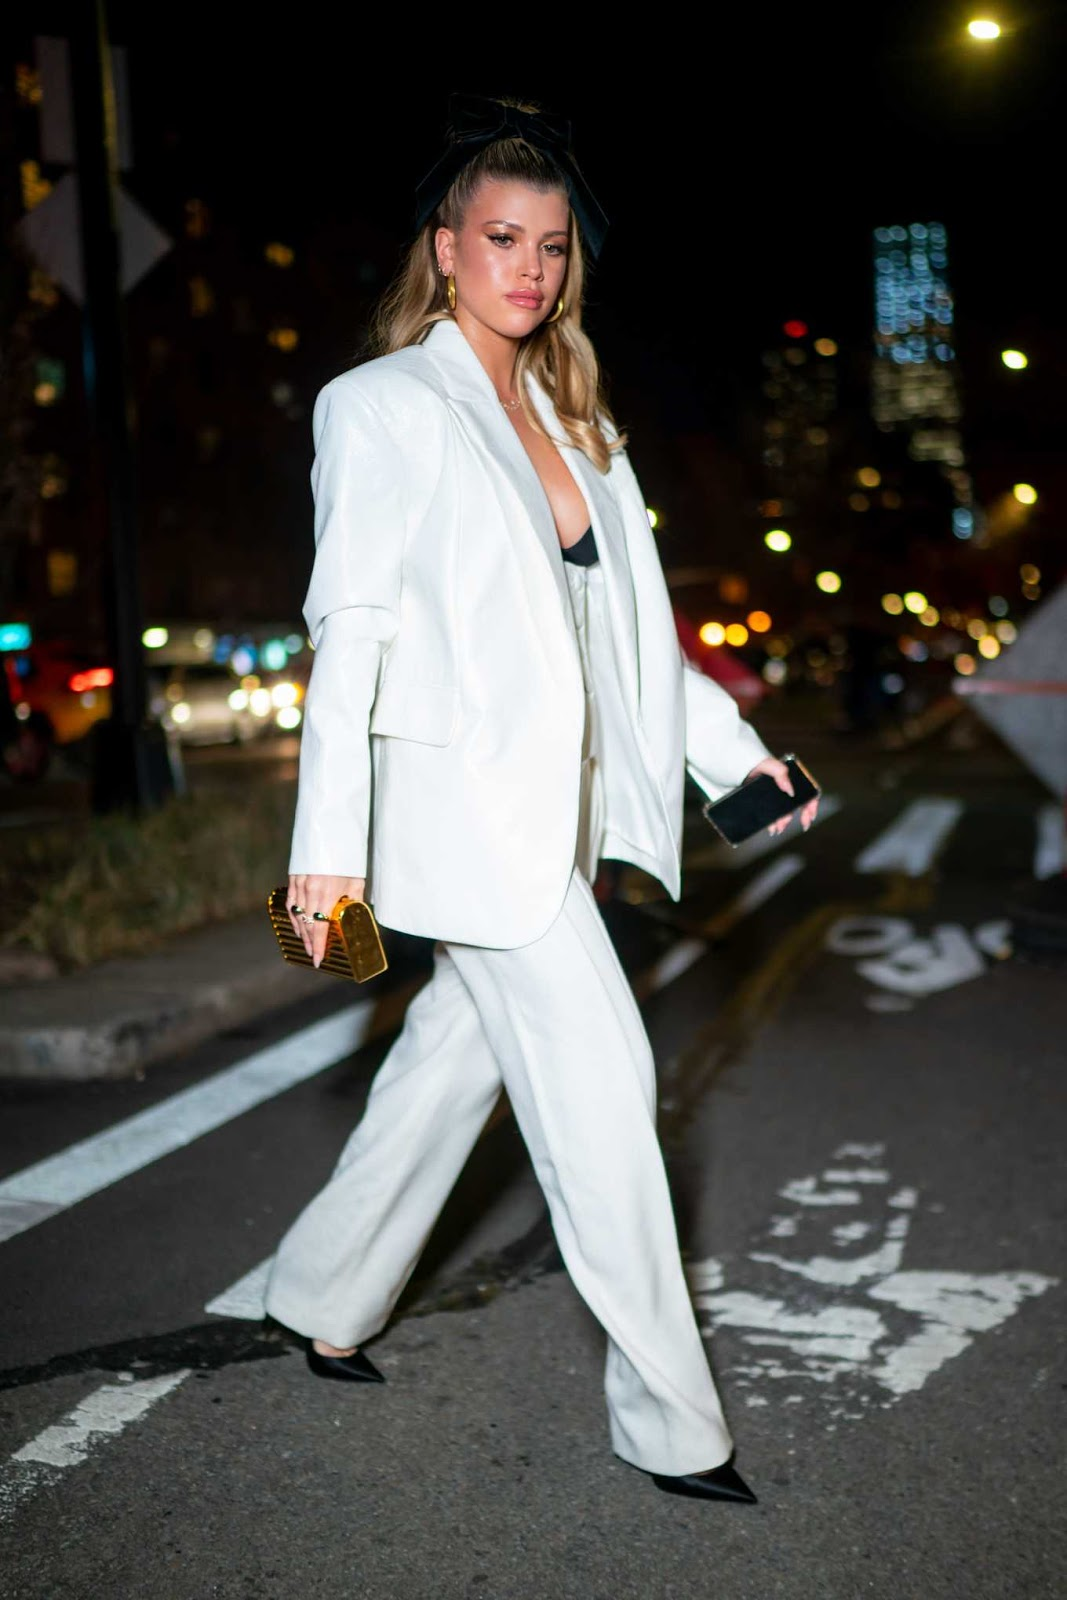 Sofia Richie Looks Astonishing in White Outfit